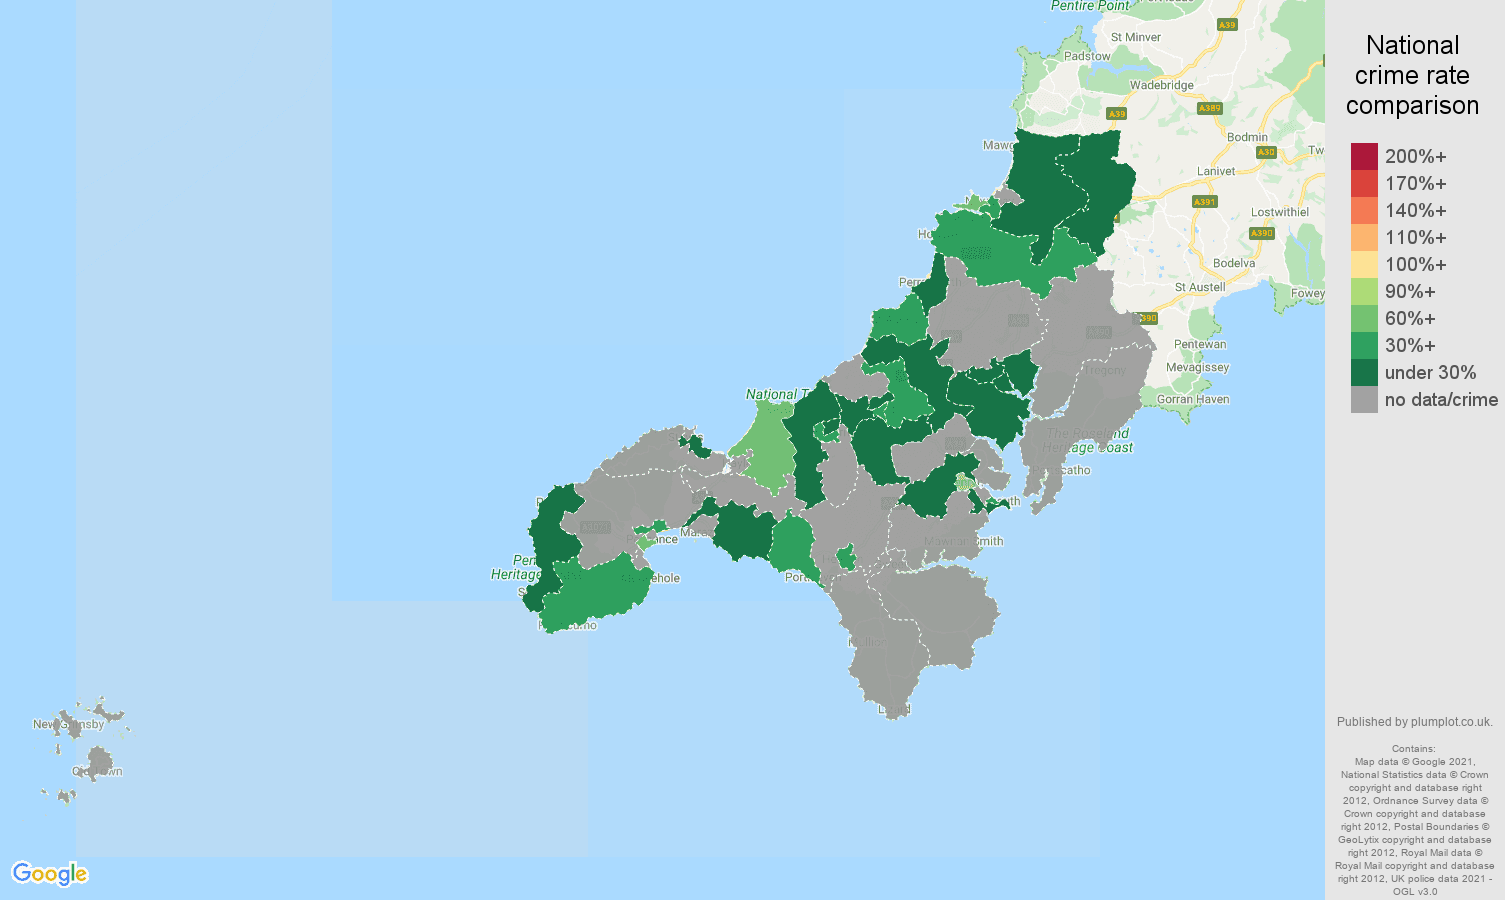 Truro bicycle theft crime rate comparison map